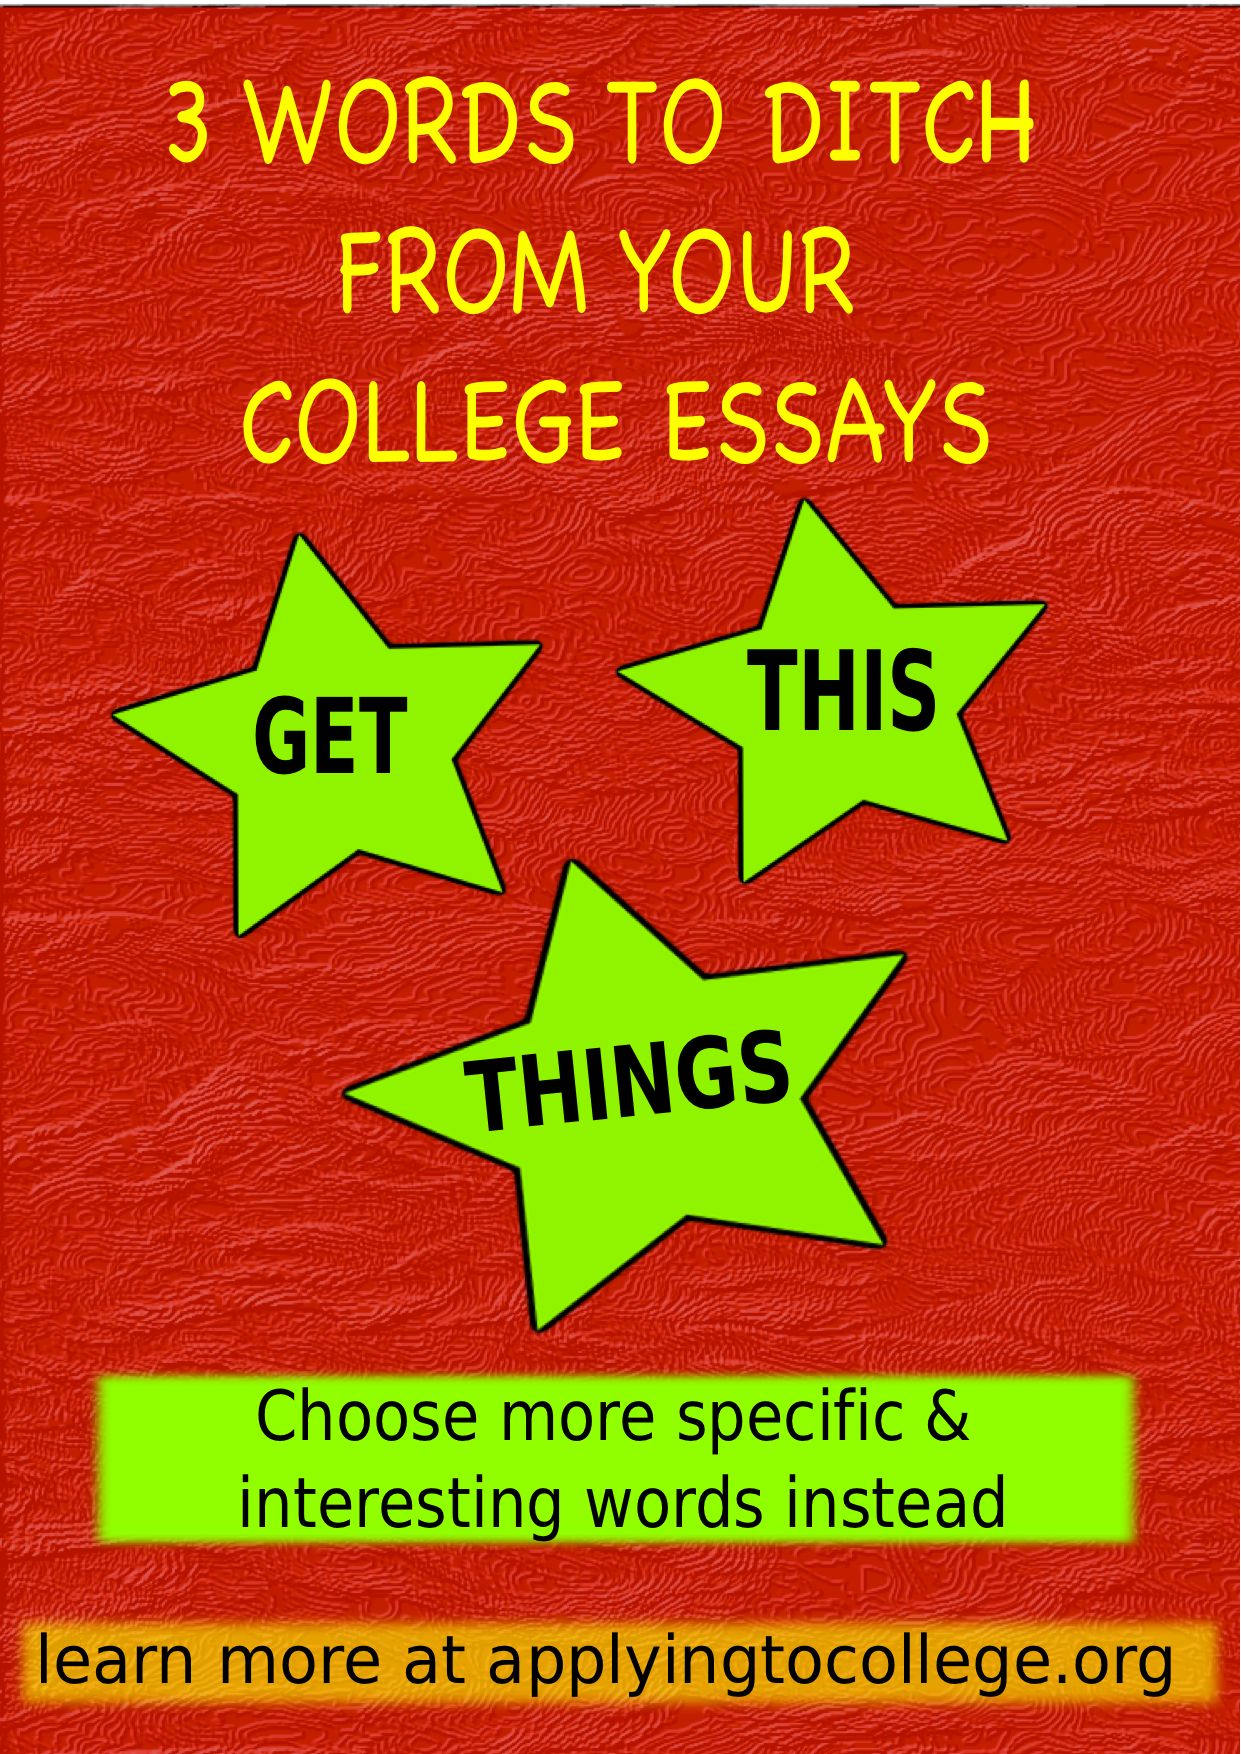 college essay writing: 3 weak words that don't belong in #college